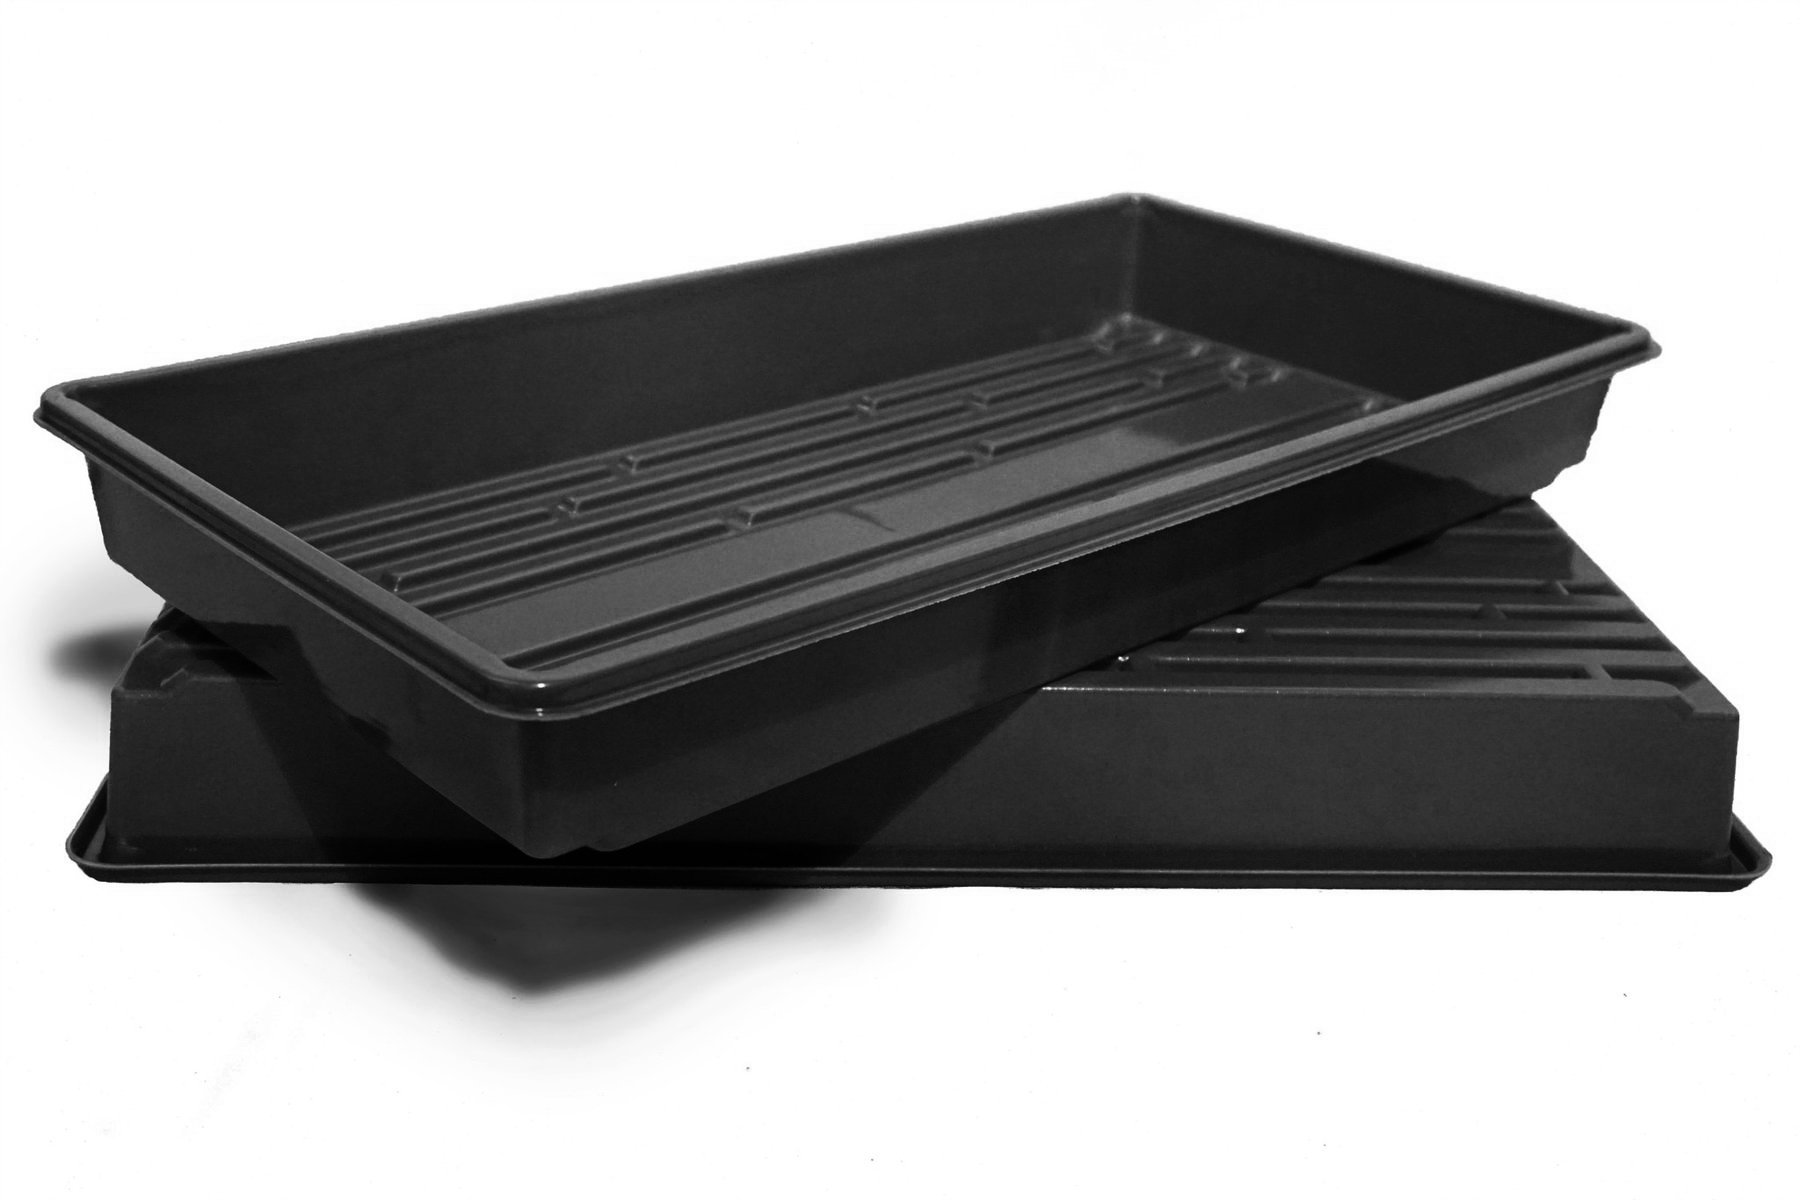 Made In USA, Growing Tray for garden seeds, Microgreens, Wheatgrass (No Drain Holes) (2, Black) by Thunder Acres